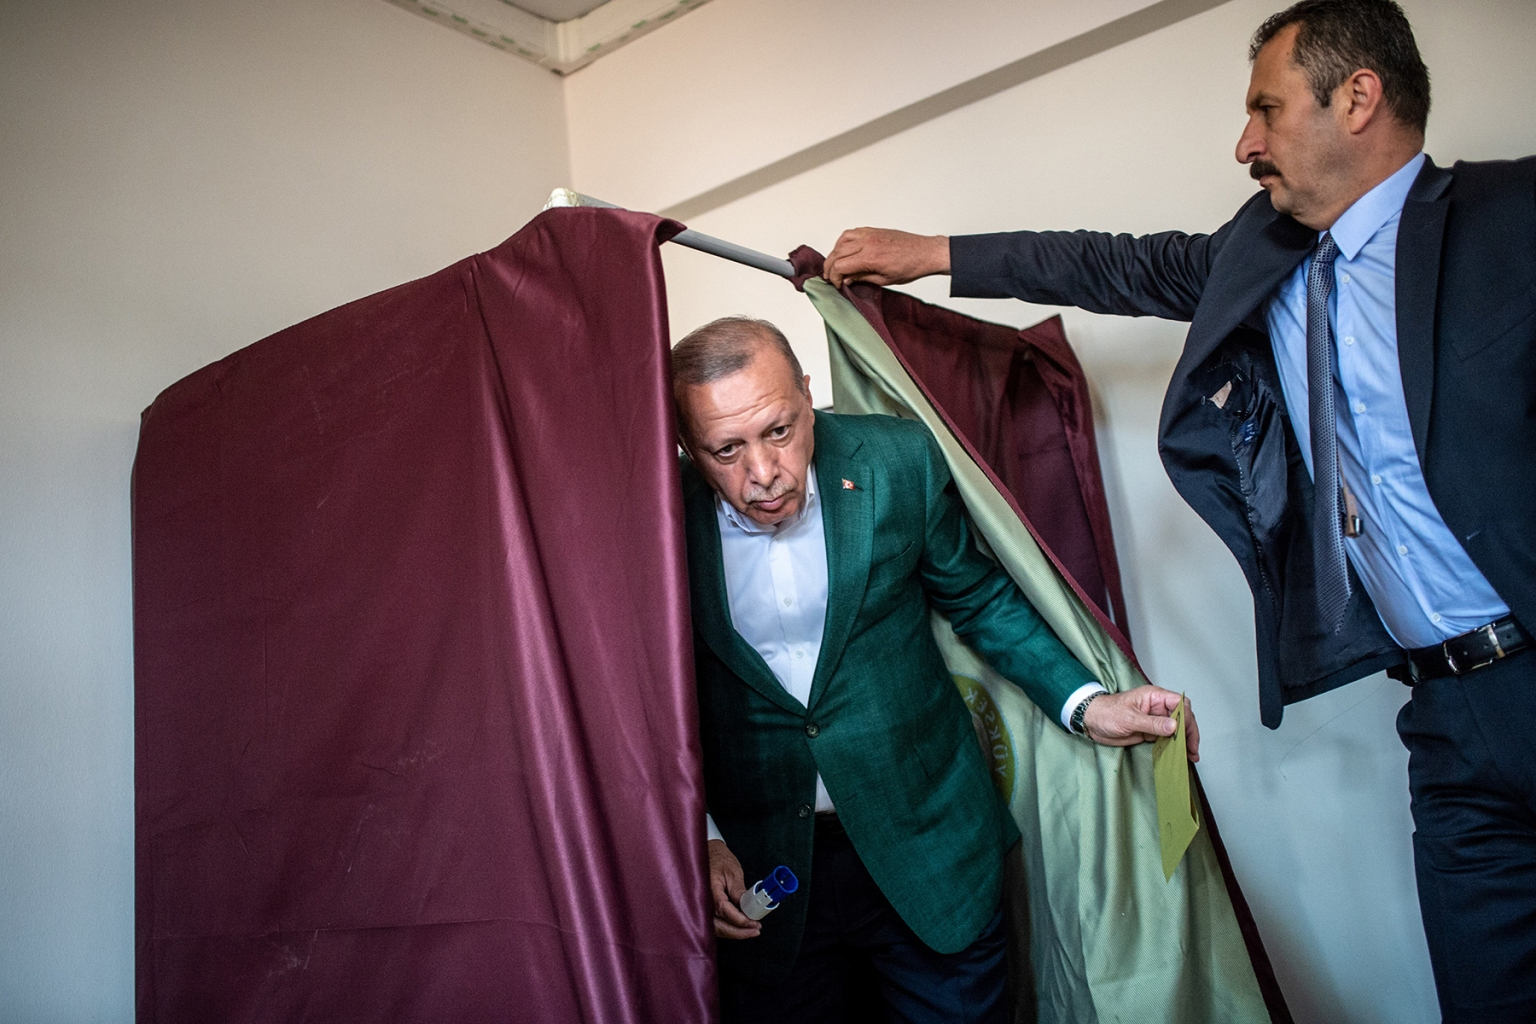 Turkish President Tayyip Erdogan exits a polling booth after casting his ballot during the municipal elections in Istanbul on March 31. BULENT KILIC/AFP/Getty Images